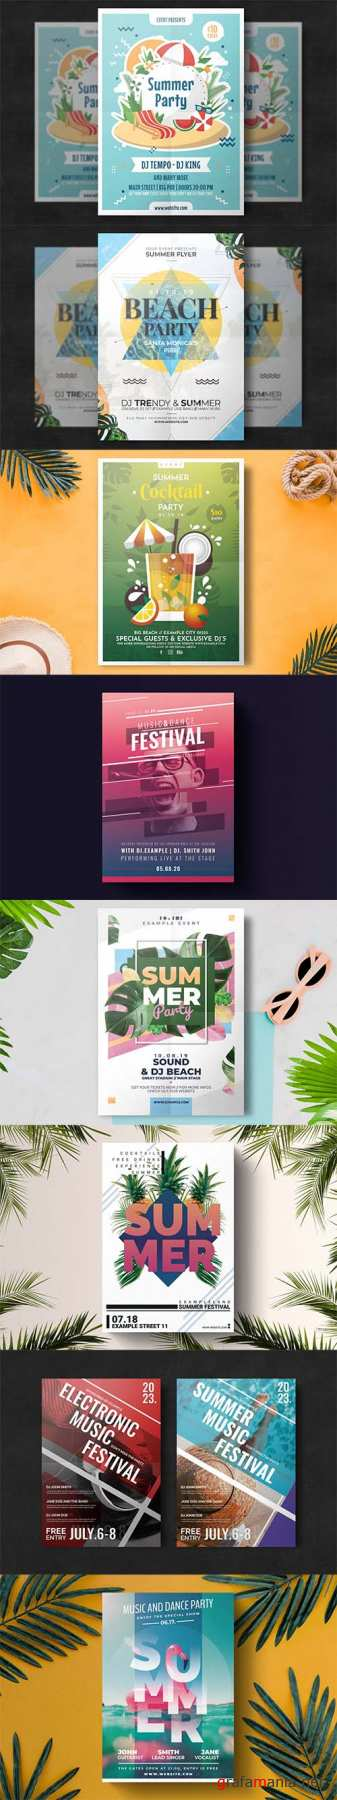 8 Summer Party Flyer Templates Pack PSD